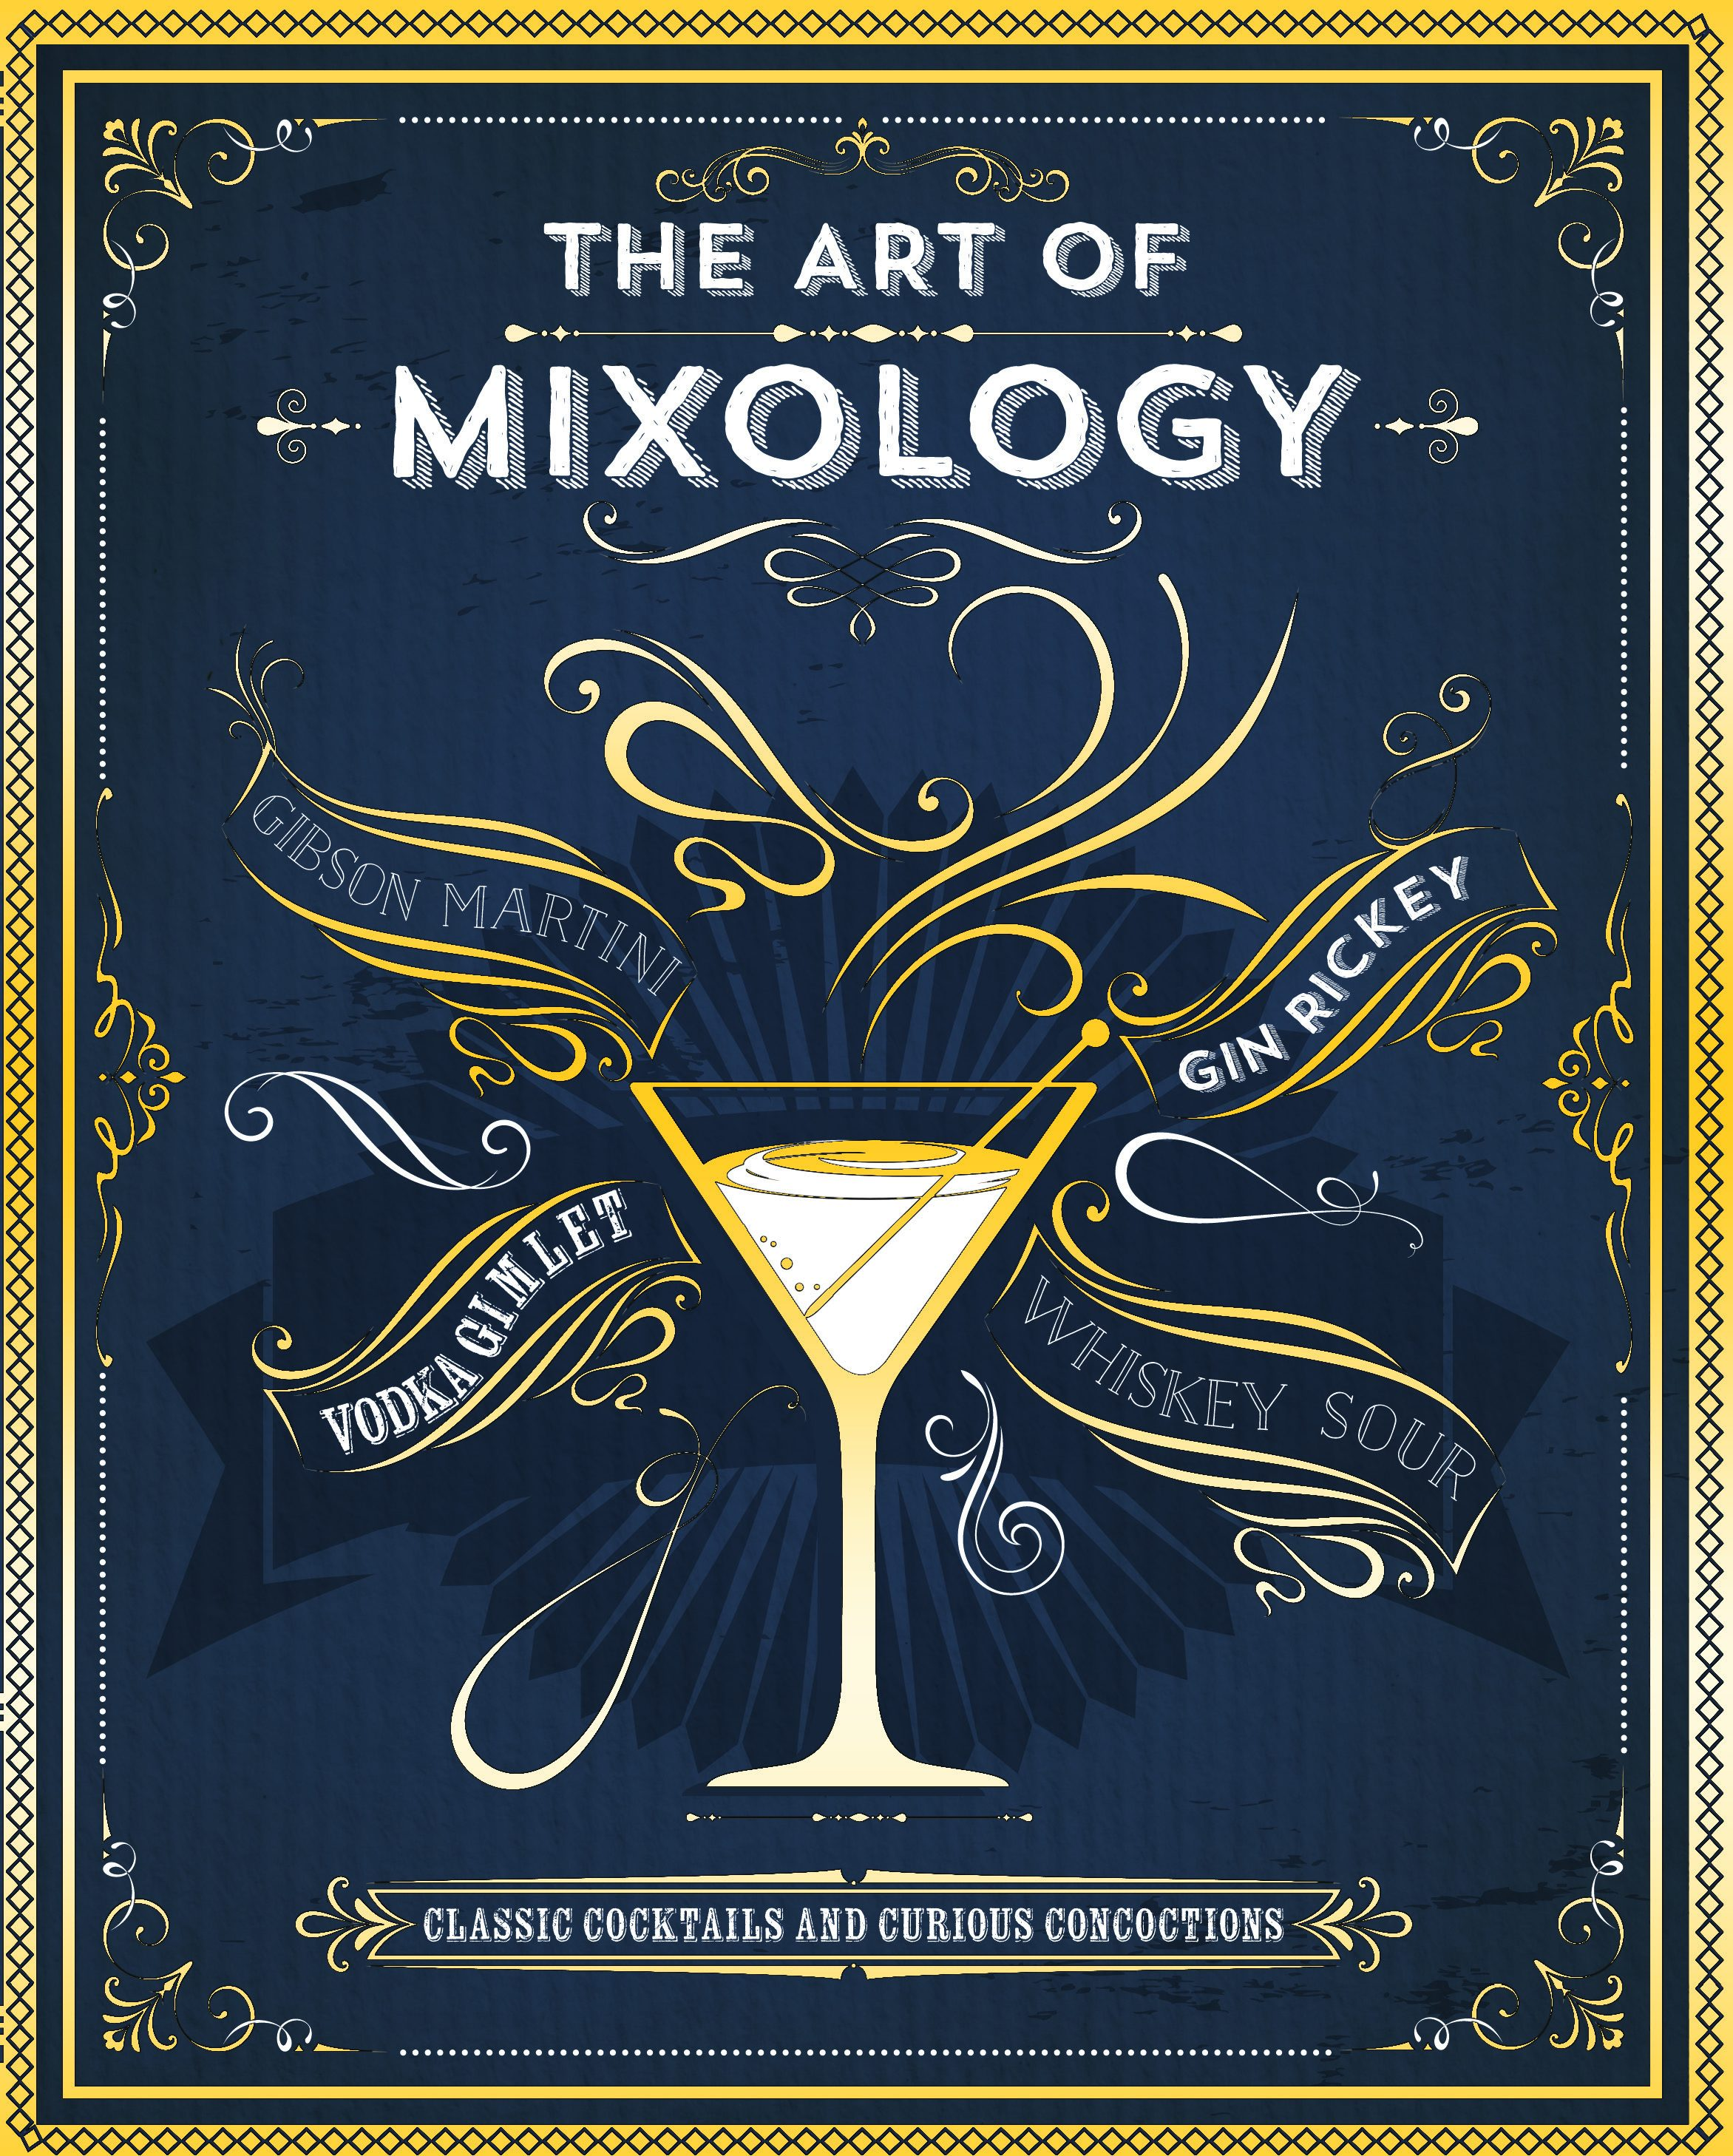 The Art of Mixology. Classic Cocktails and Curious Concoctions.